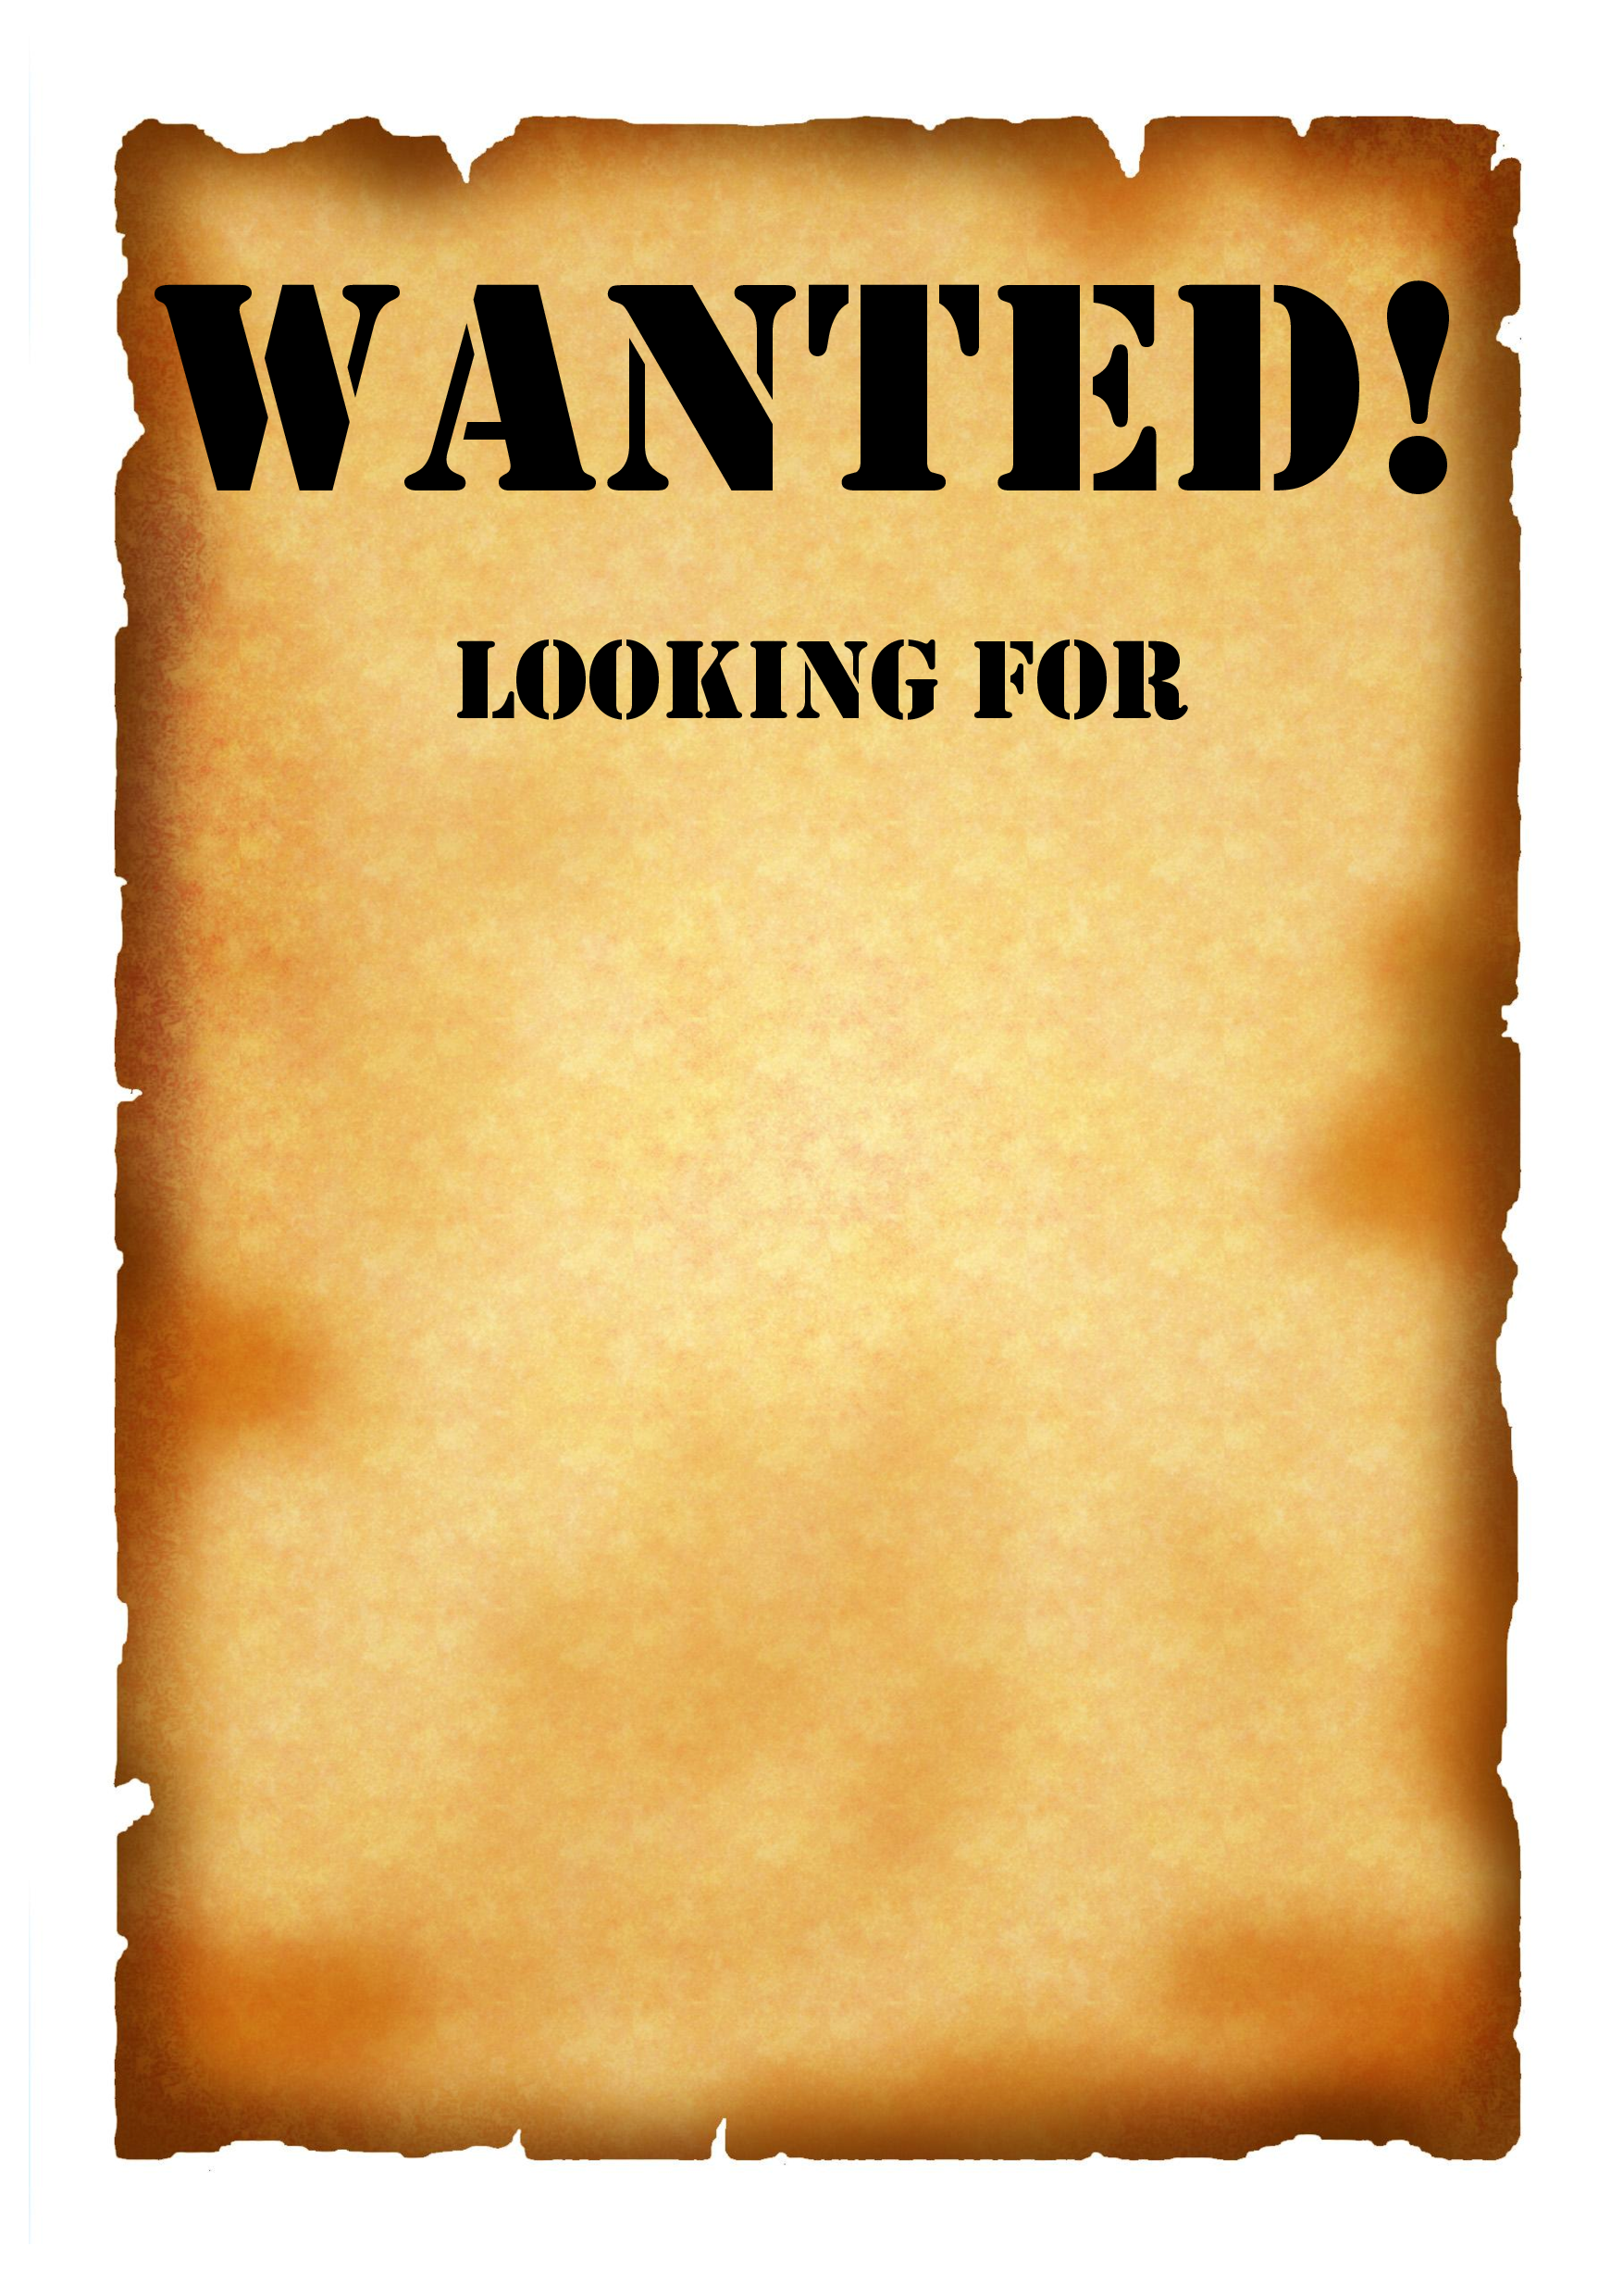 wanted pirate poster template - wanted wallpaper wallpapersafari